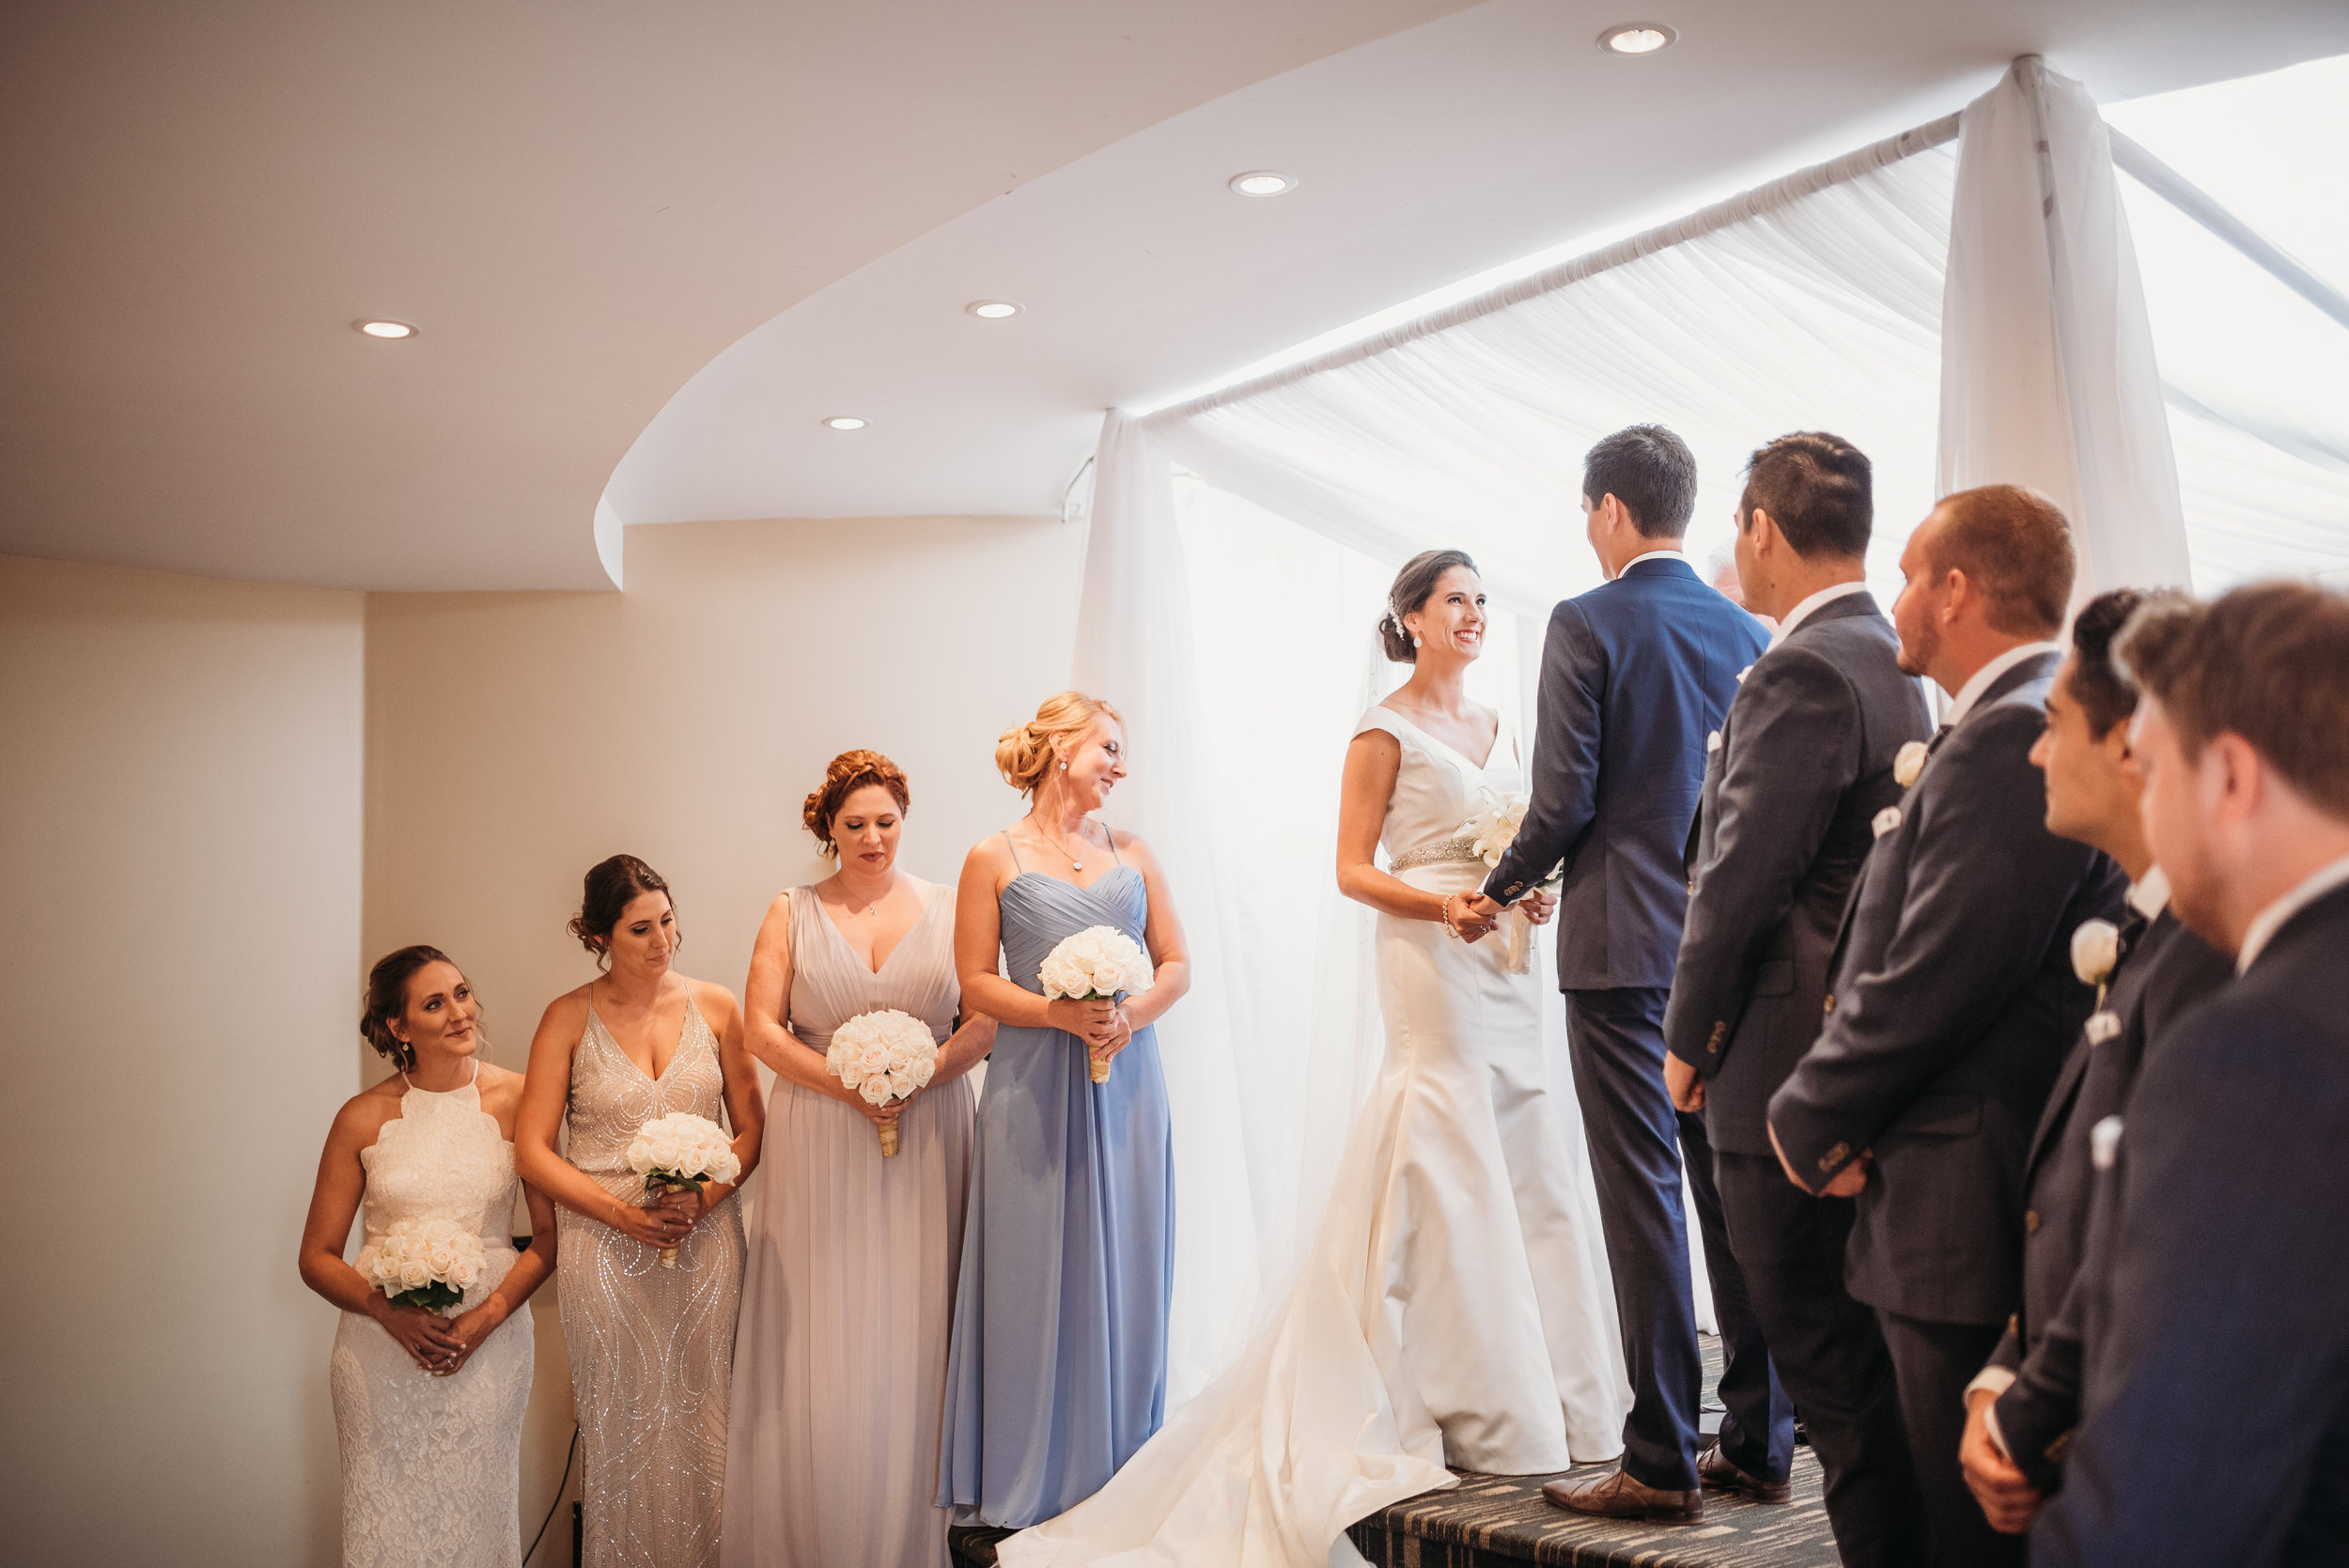 wedding-ceremony-eglington-grand-wedding-by-willow-birch-photo-toronto-documentary-wedding-photographers.jpg